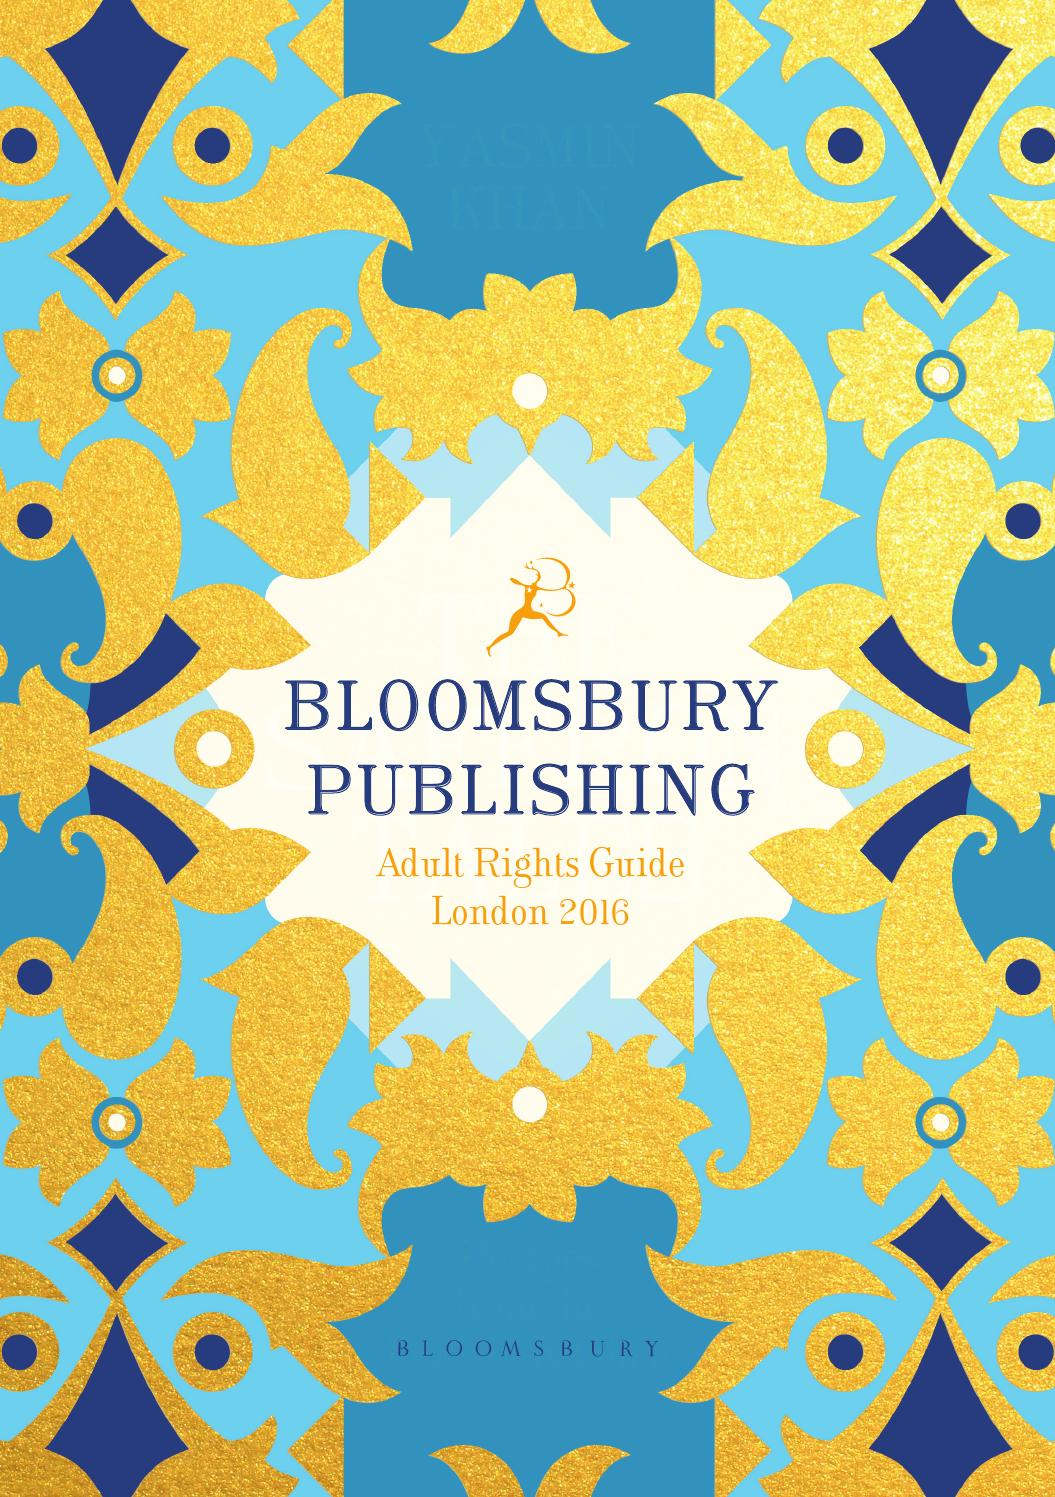 f30a9481f6e421 Bloomsbury Adult Rights Guide - London Book Fair 2016 by Bloomsbury  Publishing - issuu